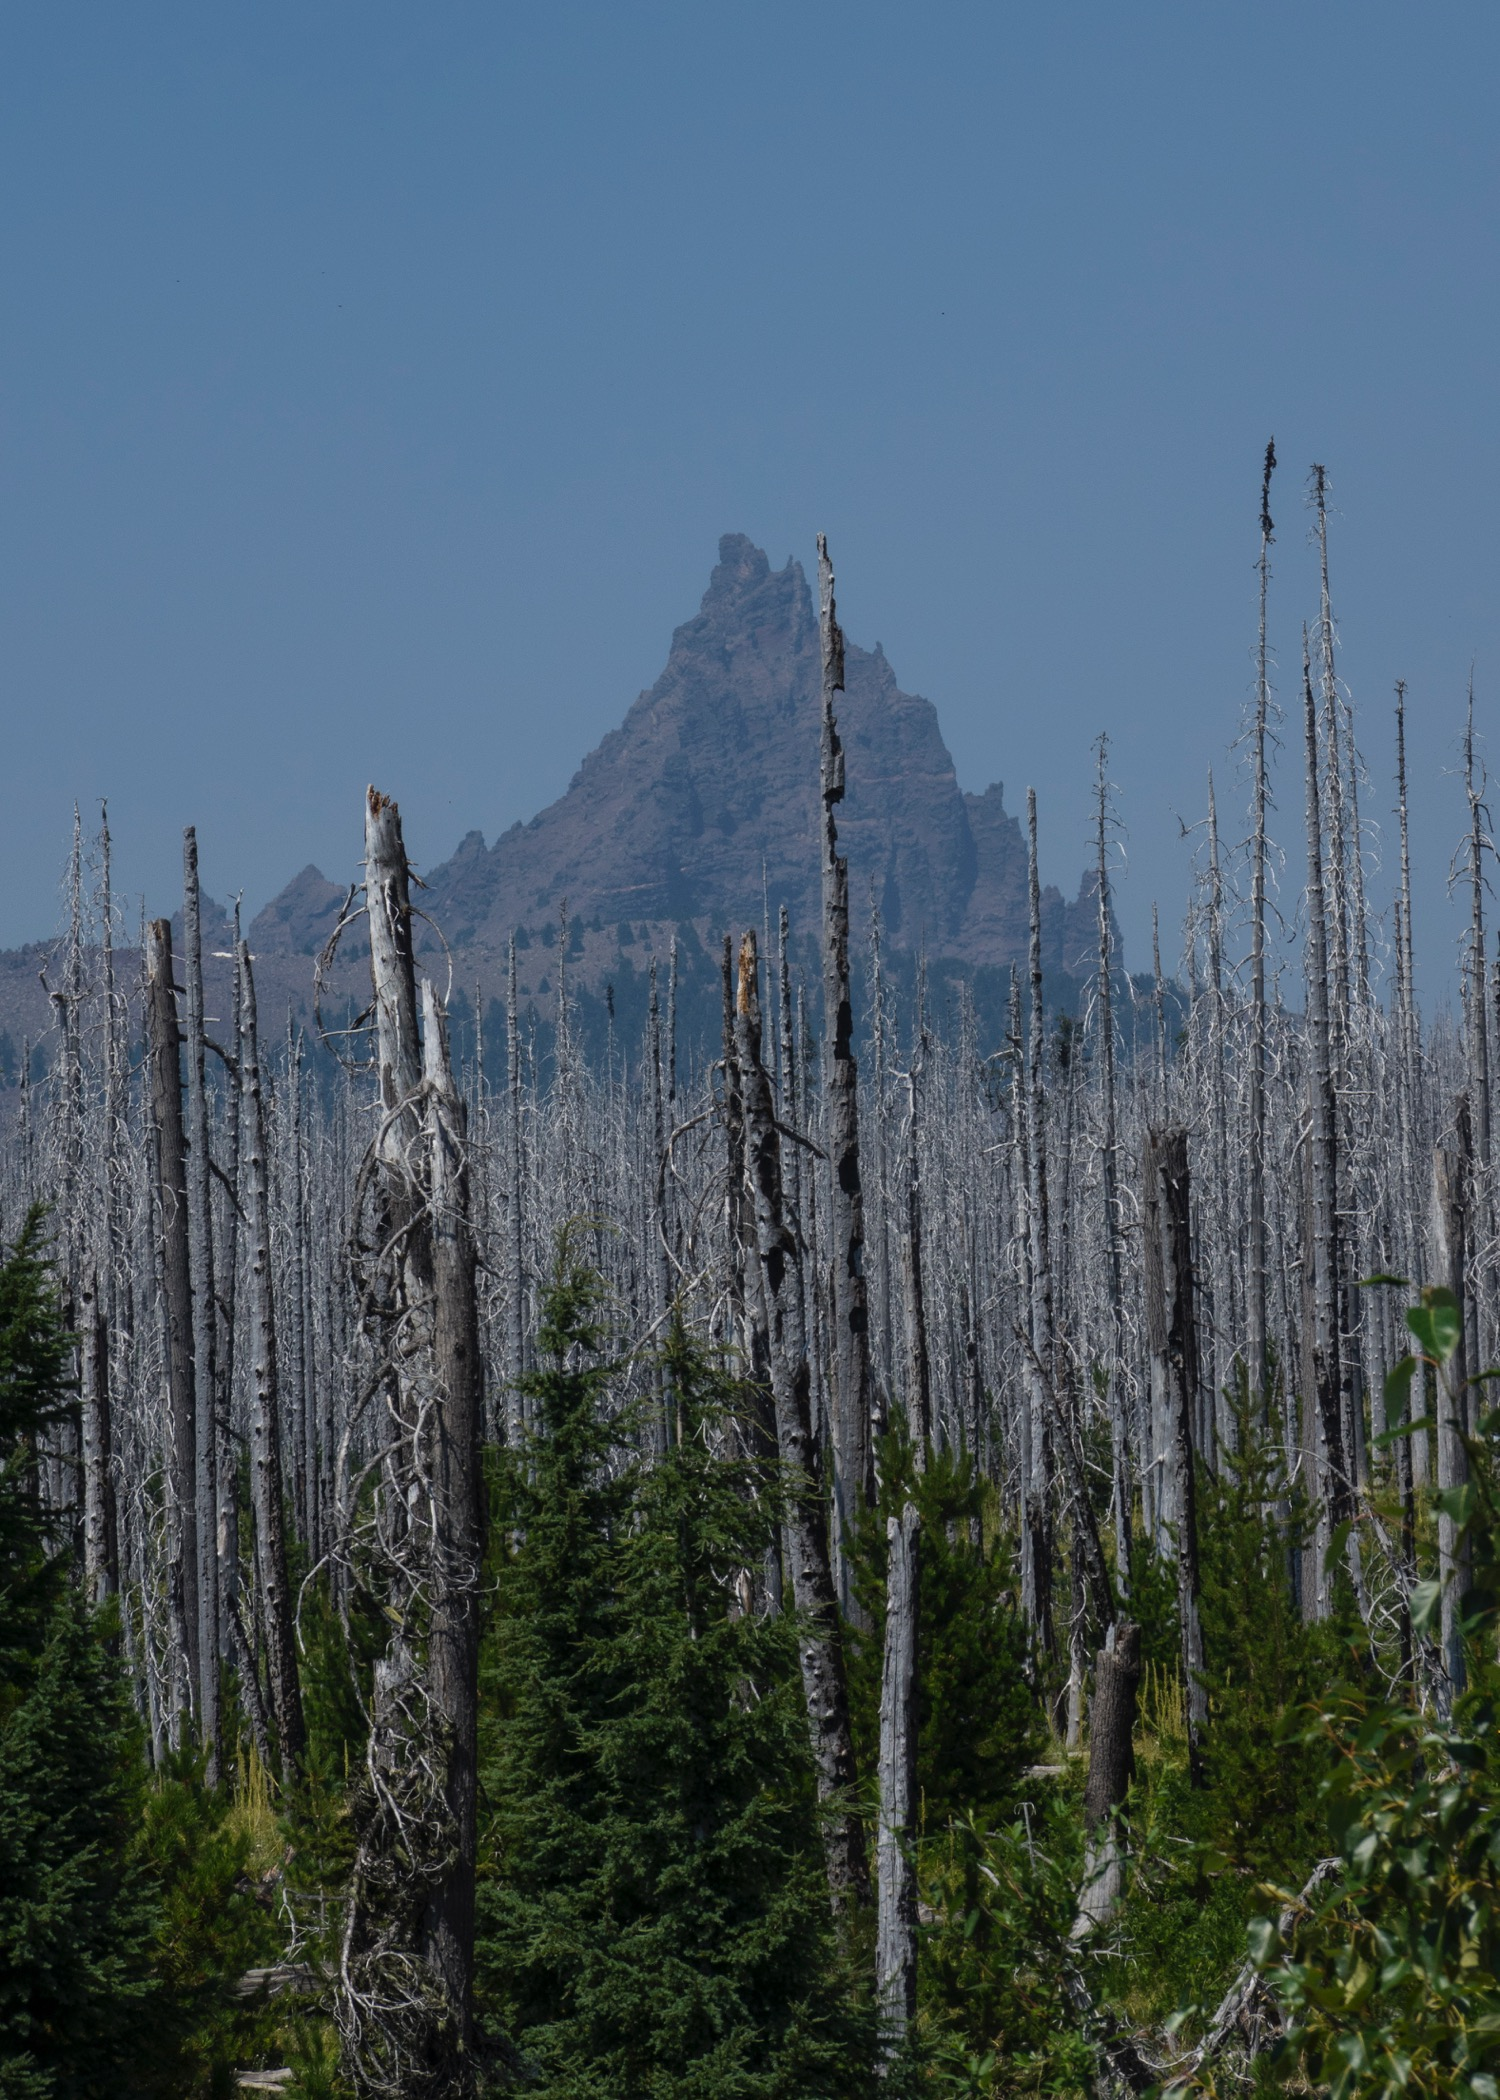 There had already been a huge fire in this area in the not-too-distant past. Mount Jefferson (I think) in the background.